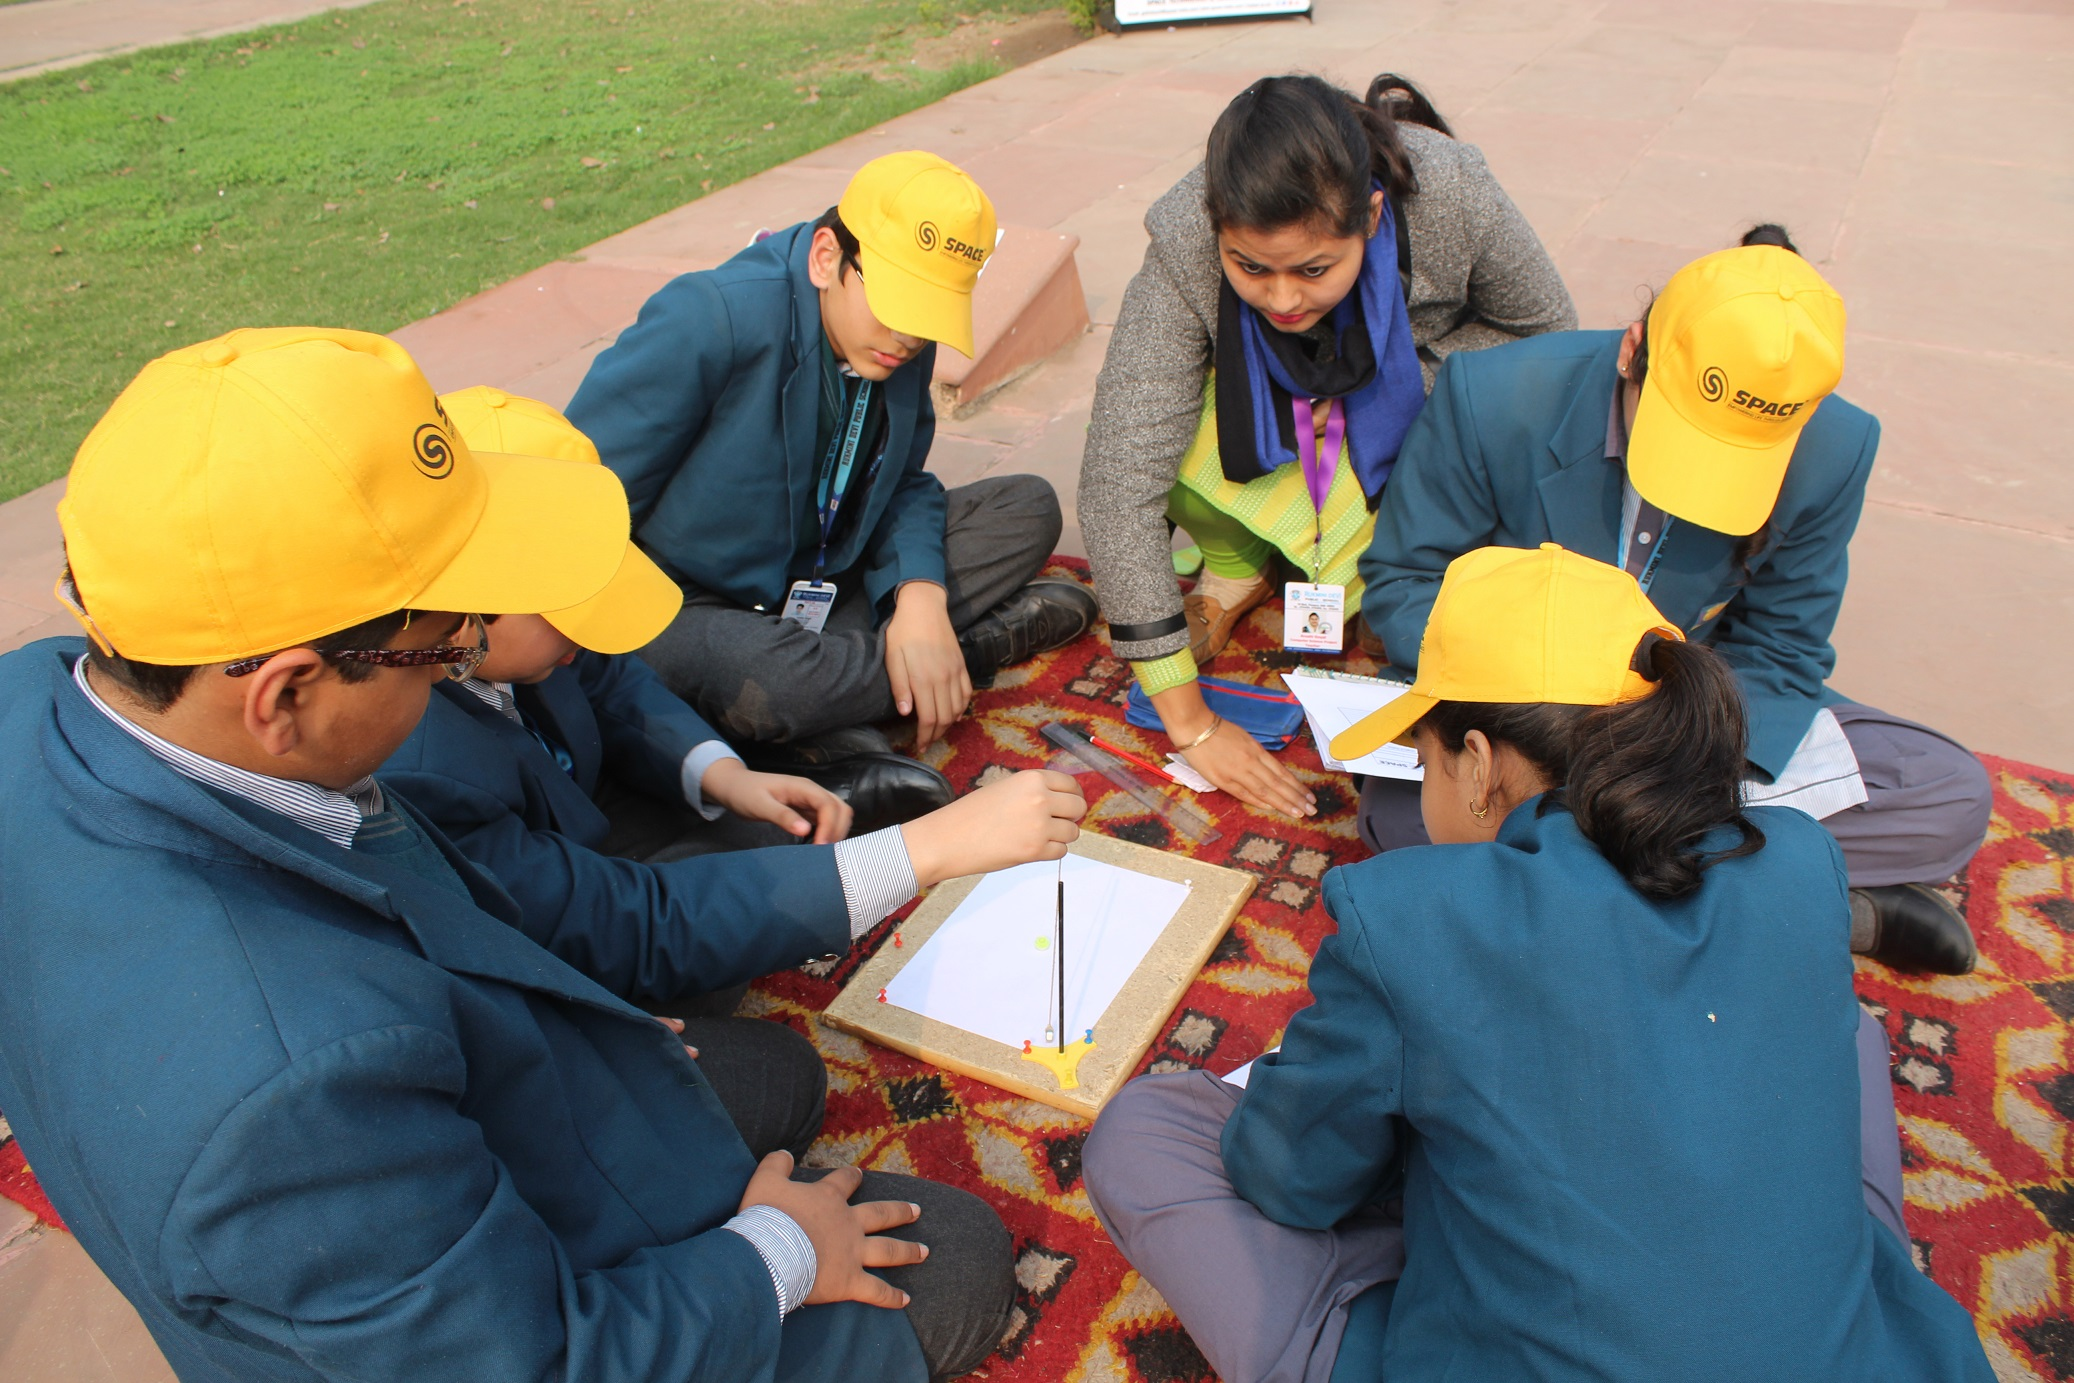 Students performing the experiment